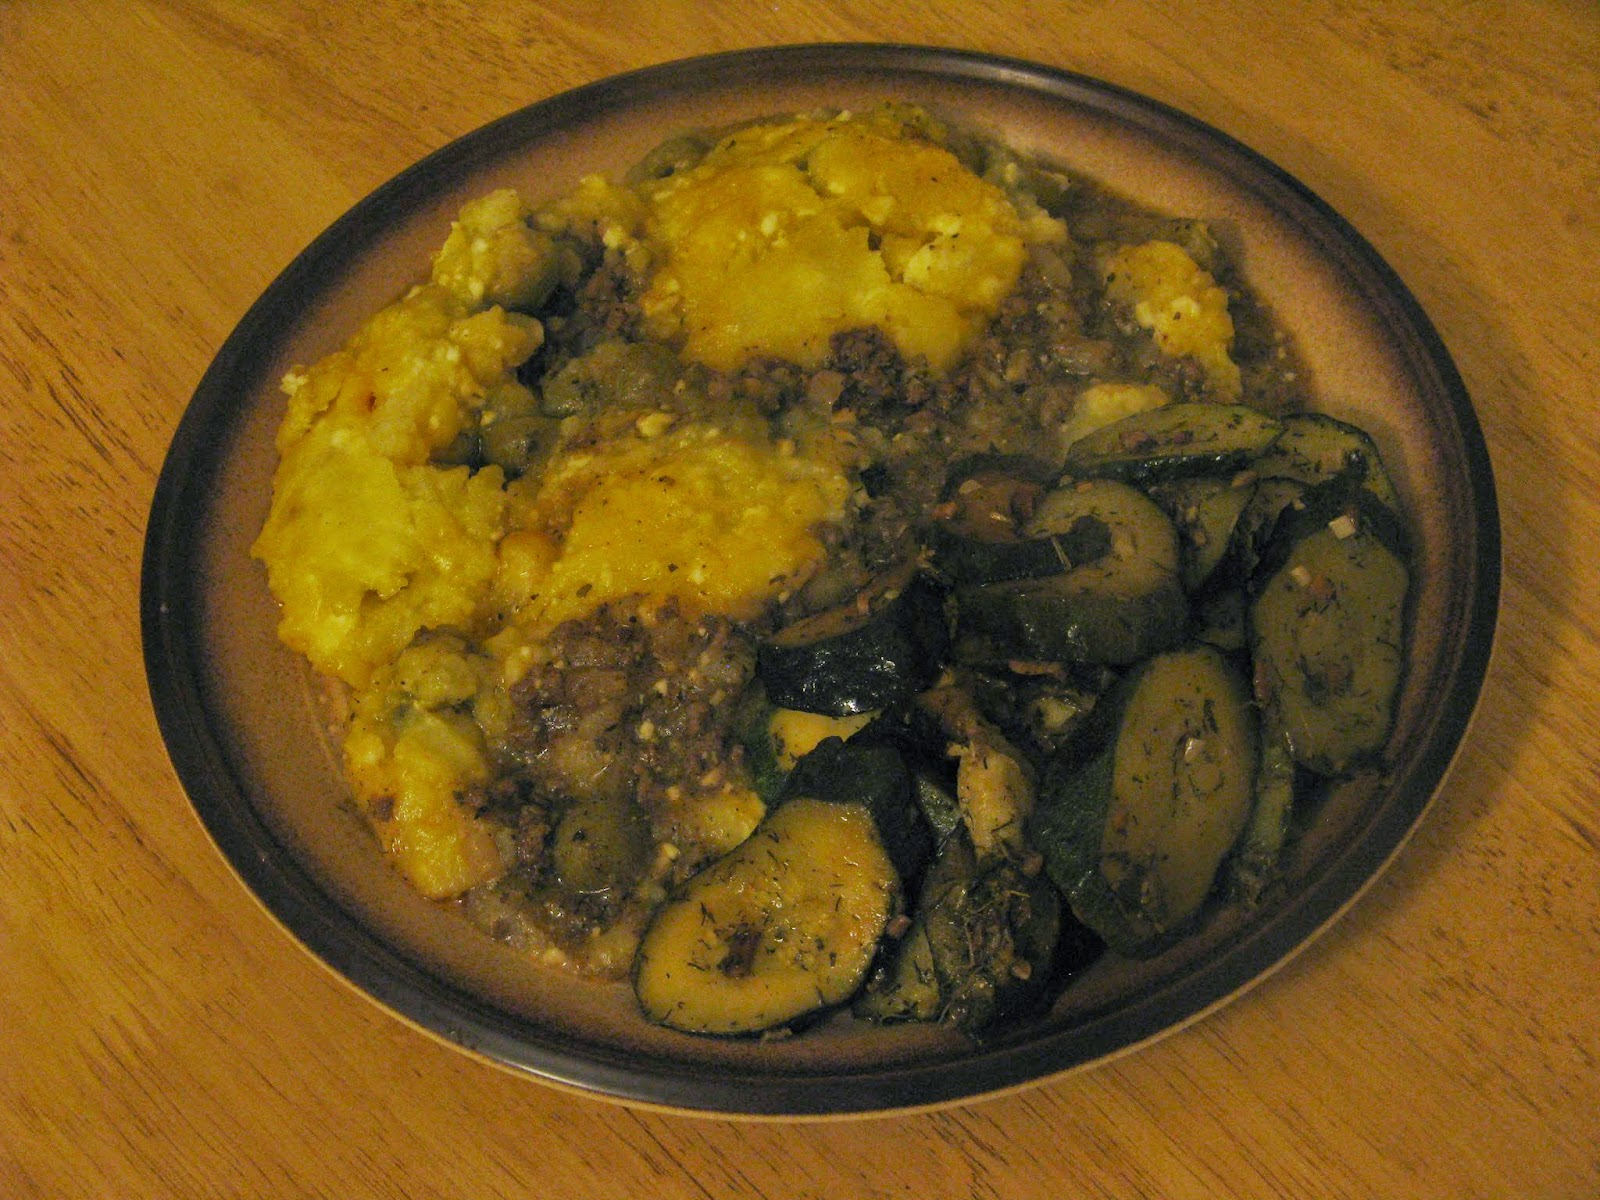 ... Mel's Kitchen: Recipe: Greek Shepherds Pie with Sauteed Courgettes